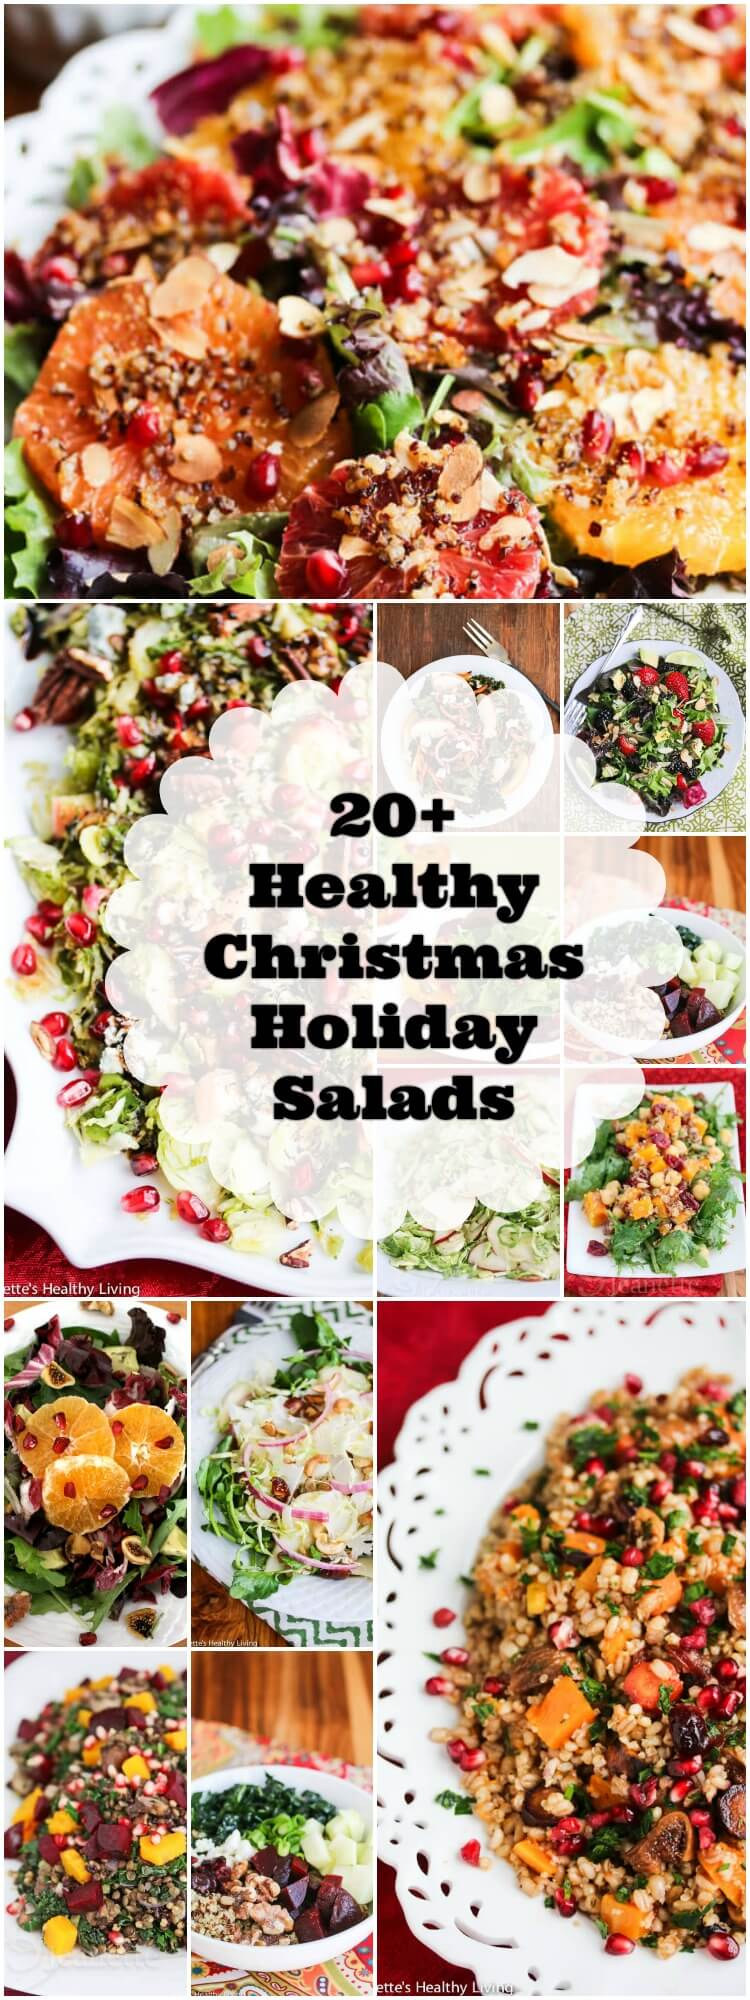 Healthy Christmas Holiday Salad Recipes - lighten up your Christmas holiday menu with one or more